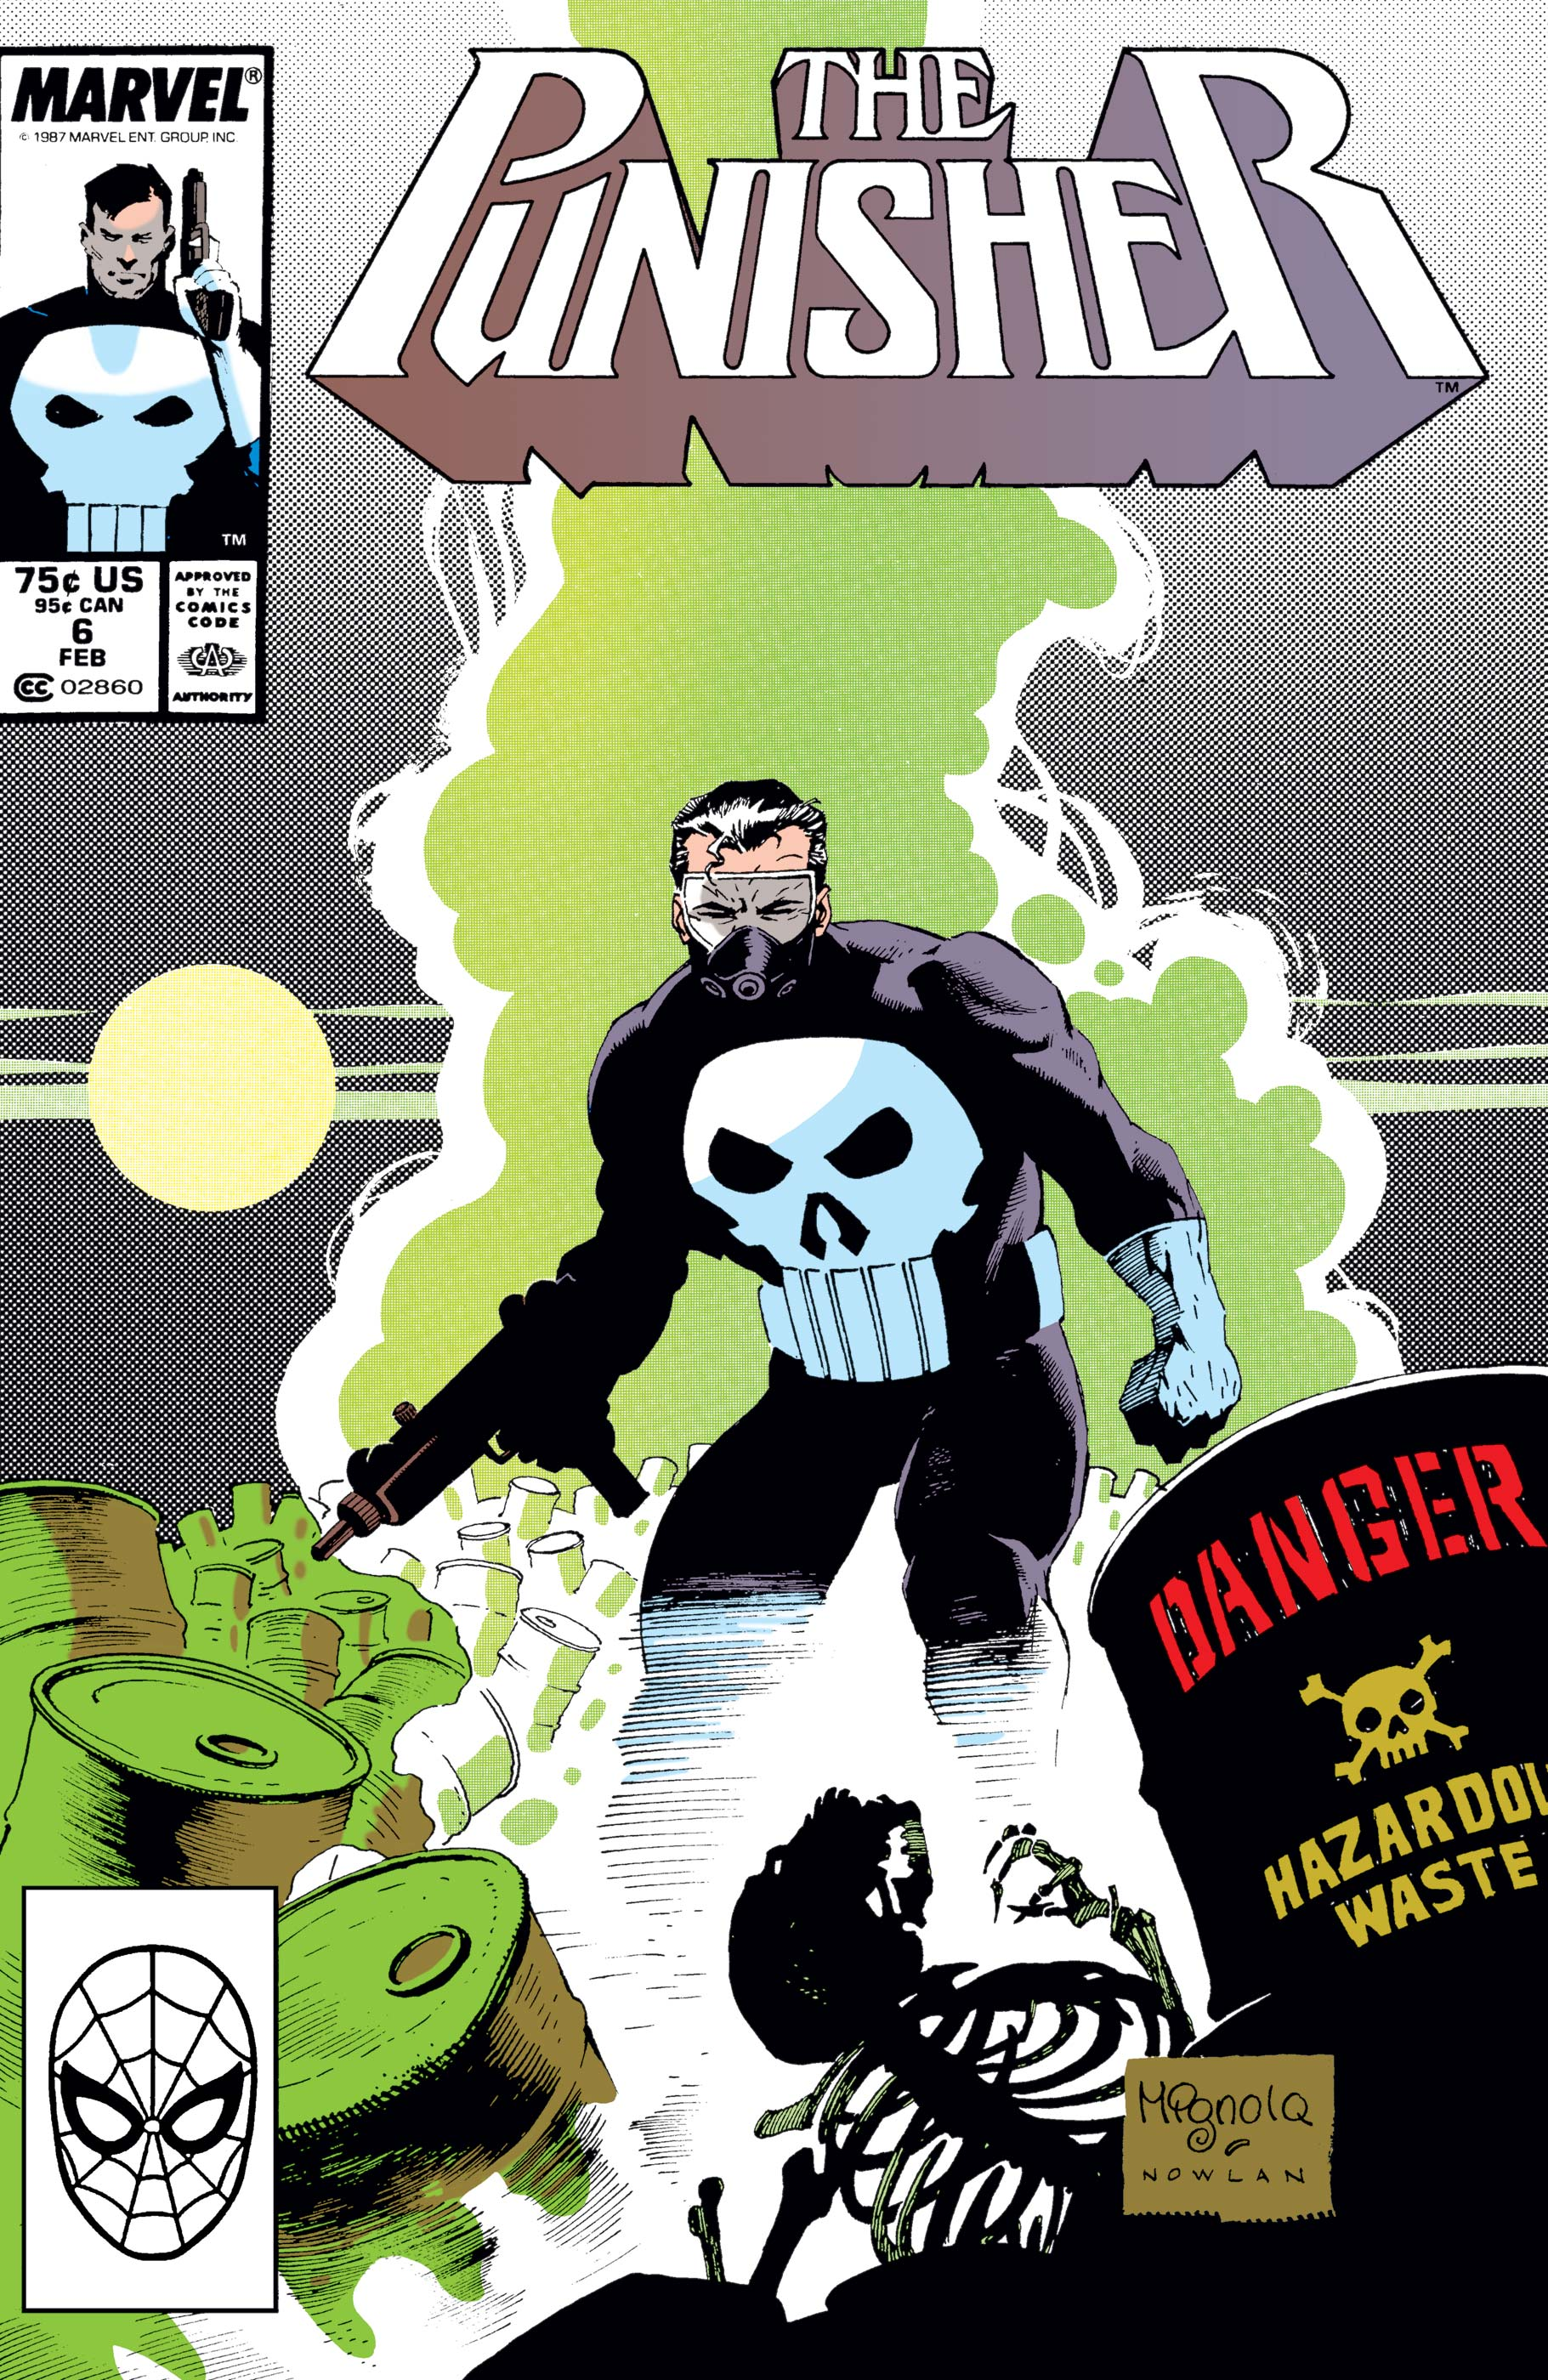 The Punisher (1987) #6